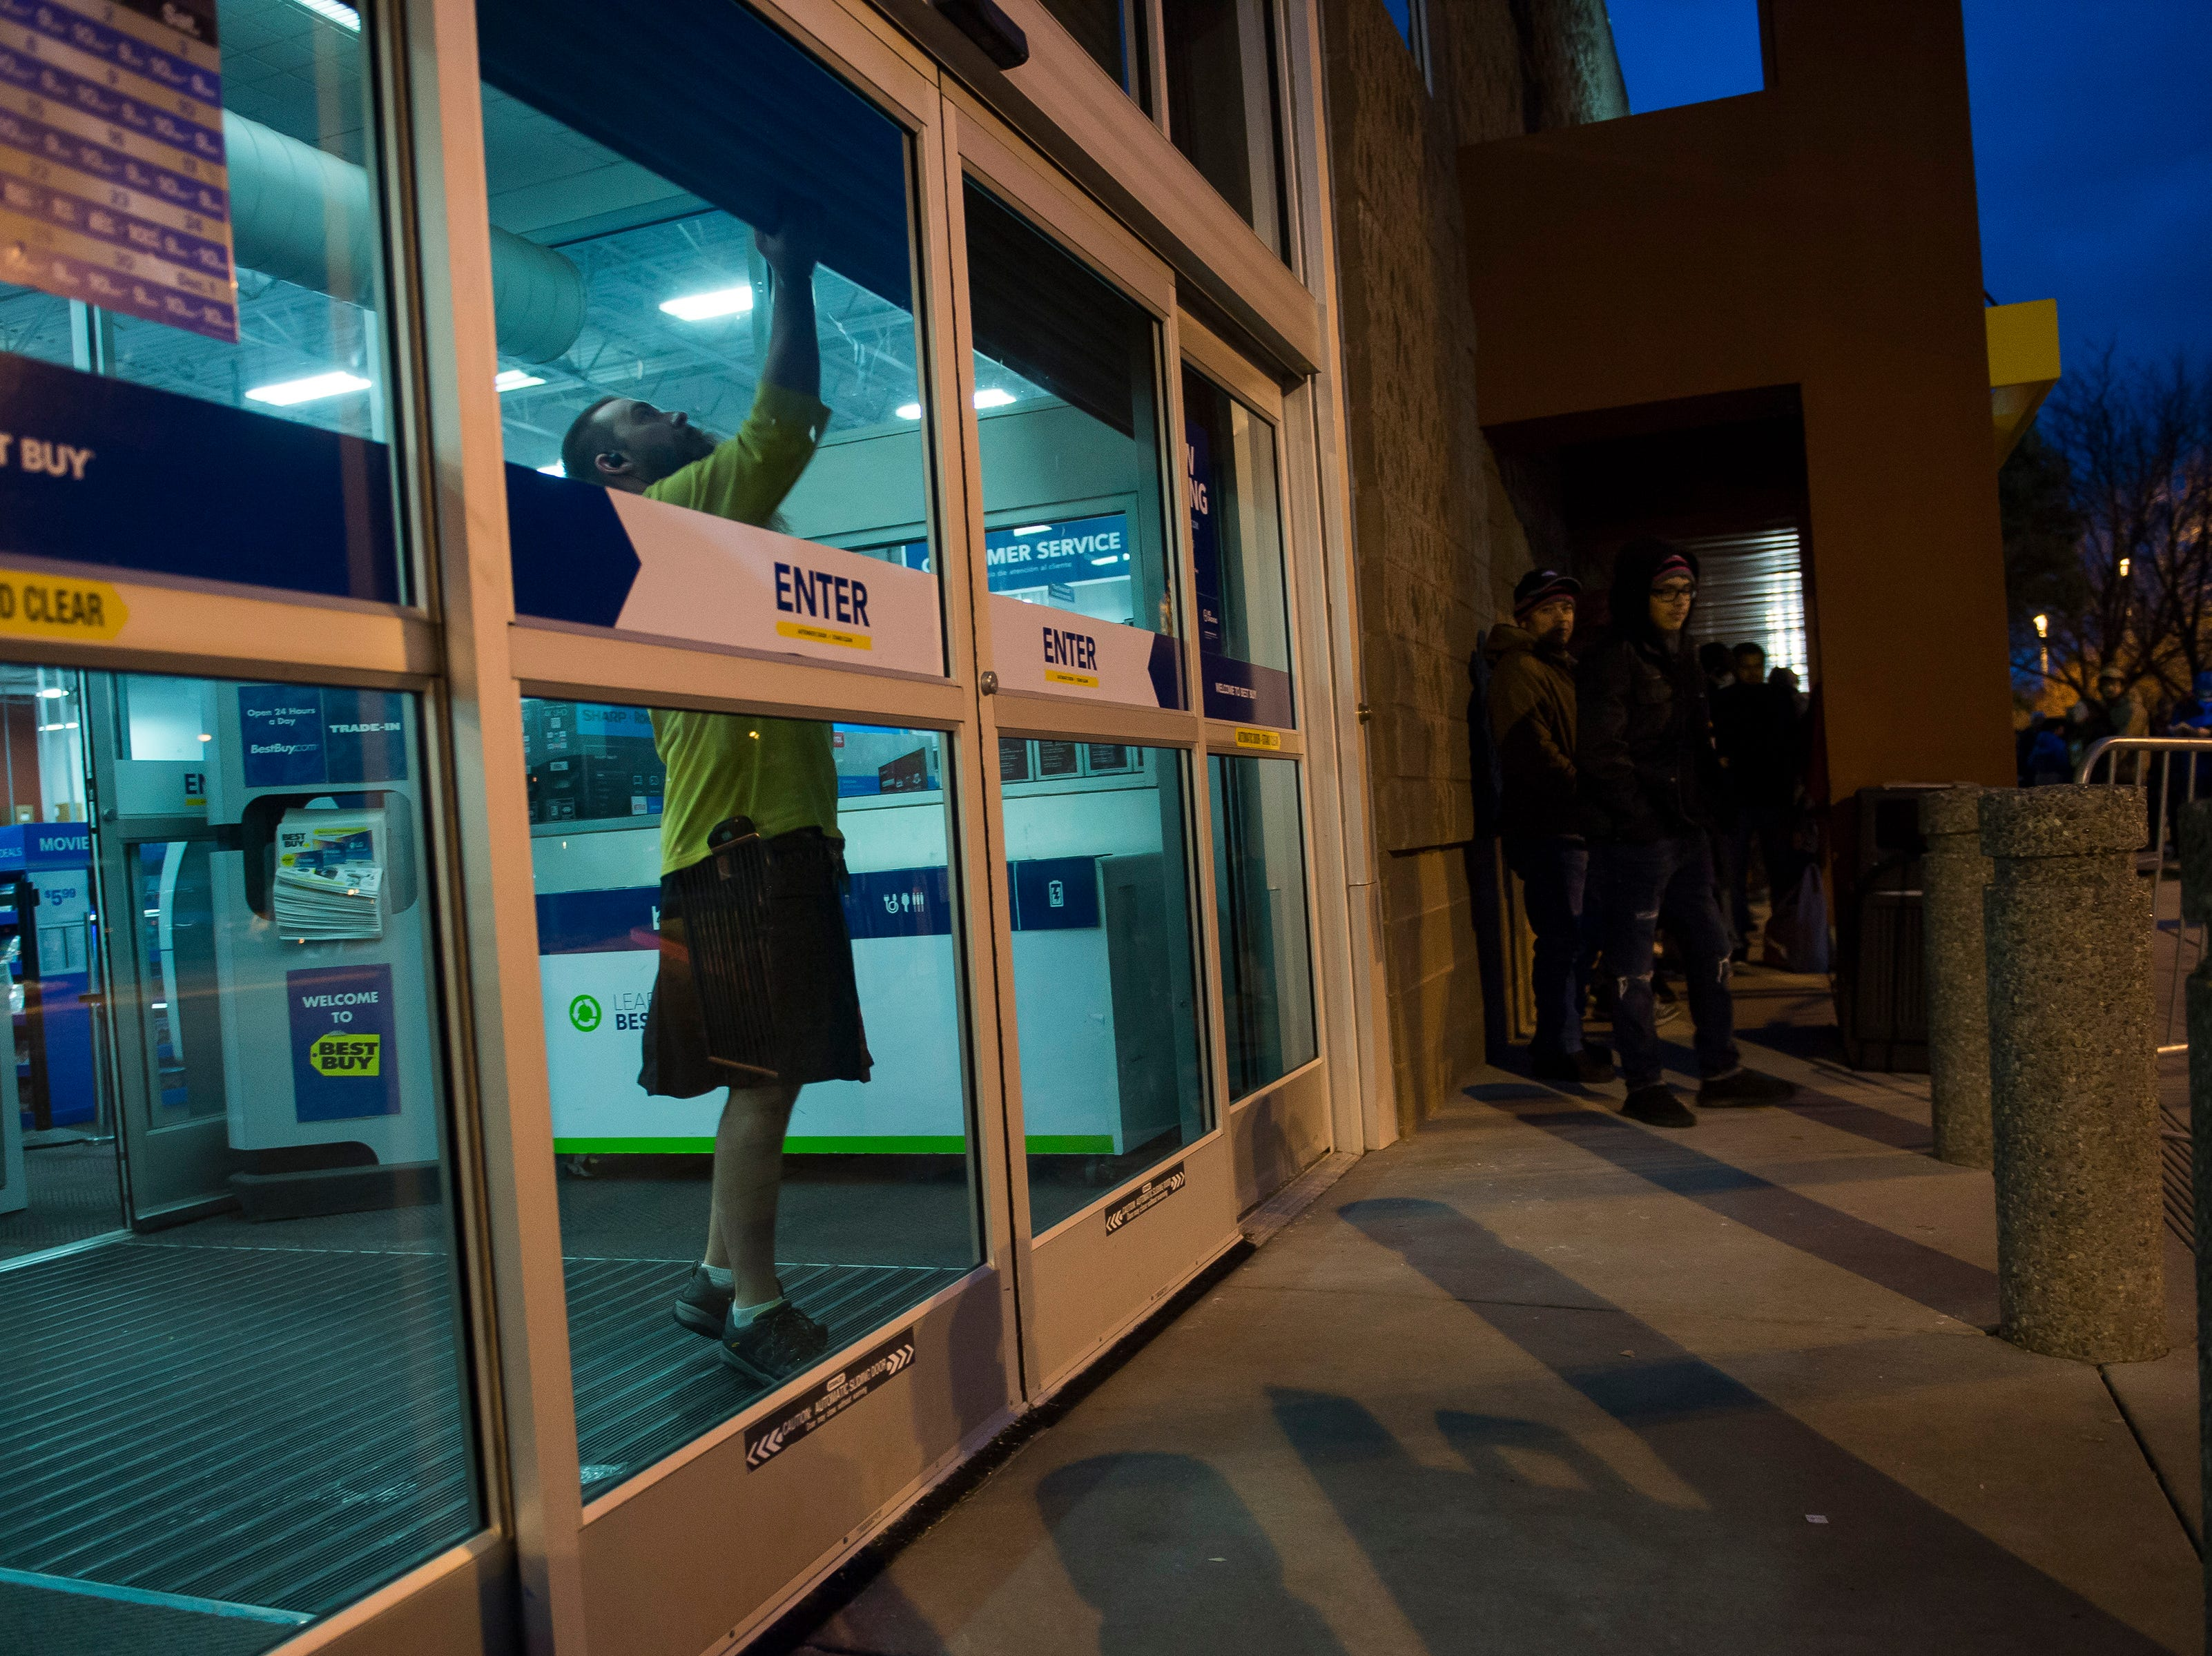 Head of security Travis Neal lifts up the security shutters before letting customers in on Thursday, Nov. 22, 2018, at Best Buy in Fort Collins, Colo.